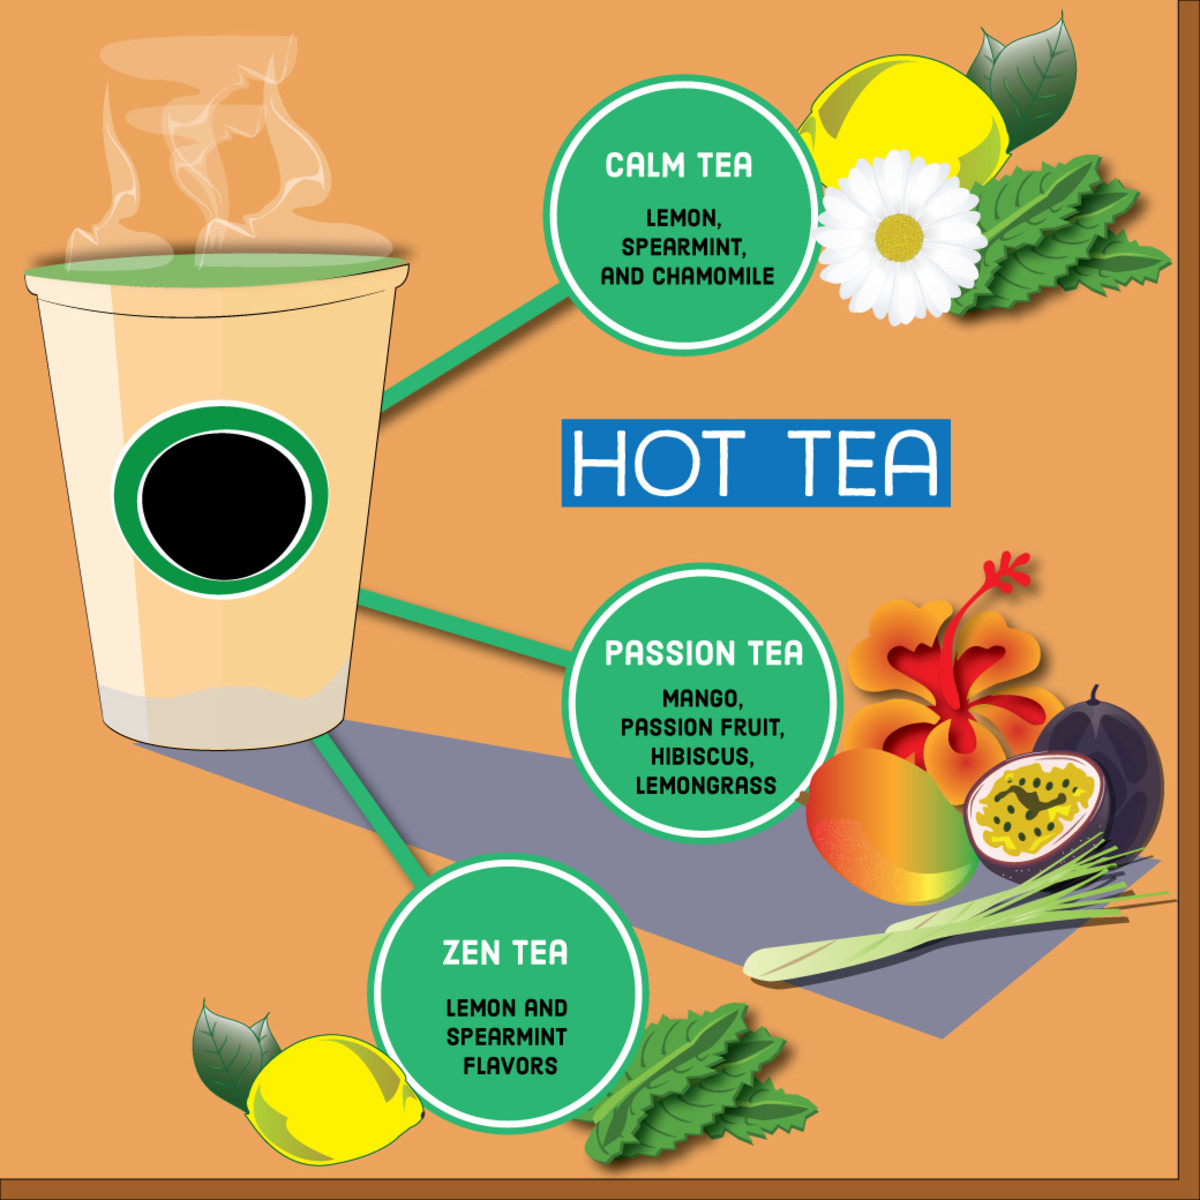 Hot teas have a variety of caffeine-free flavors.